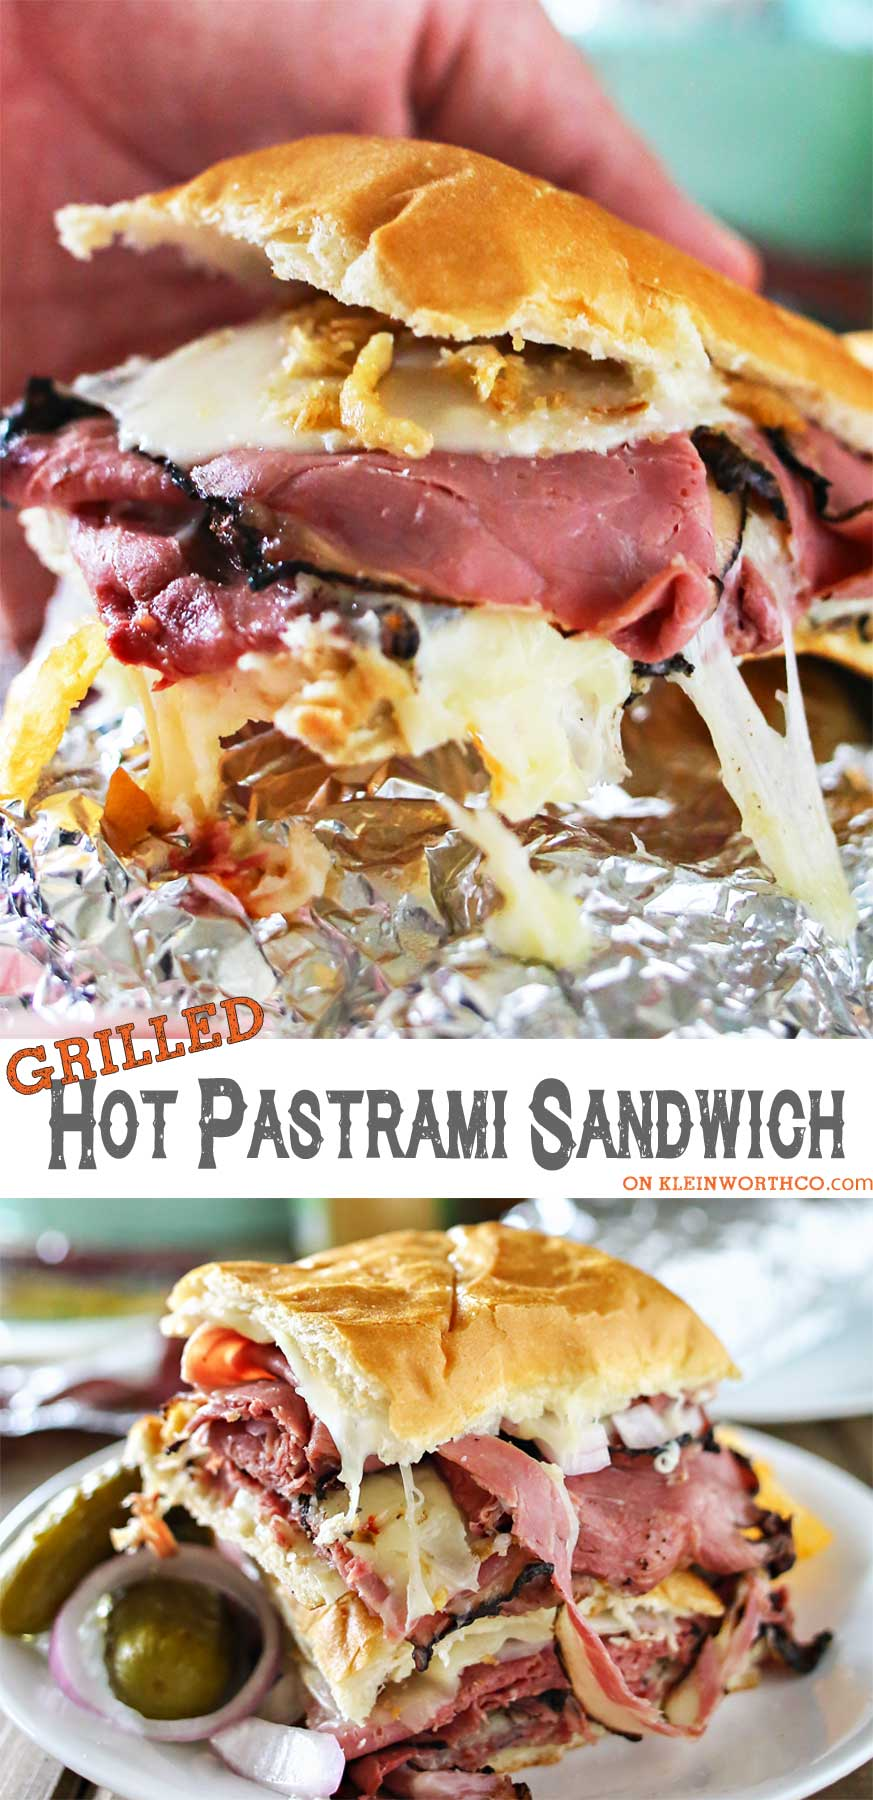 Summer grilling just got better with this Grilled Hot Pastrami Sandwich. Combining foil grilling & the love for a pastrami sandwich, it's delicious & easy!